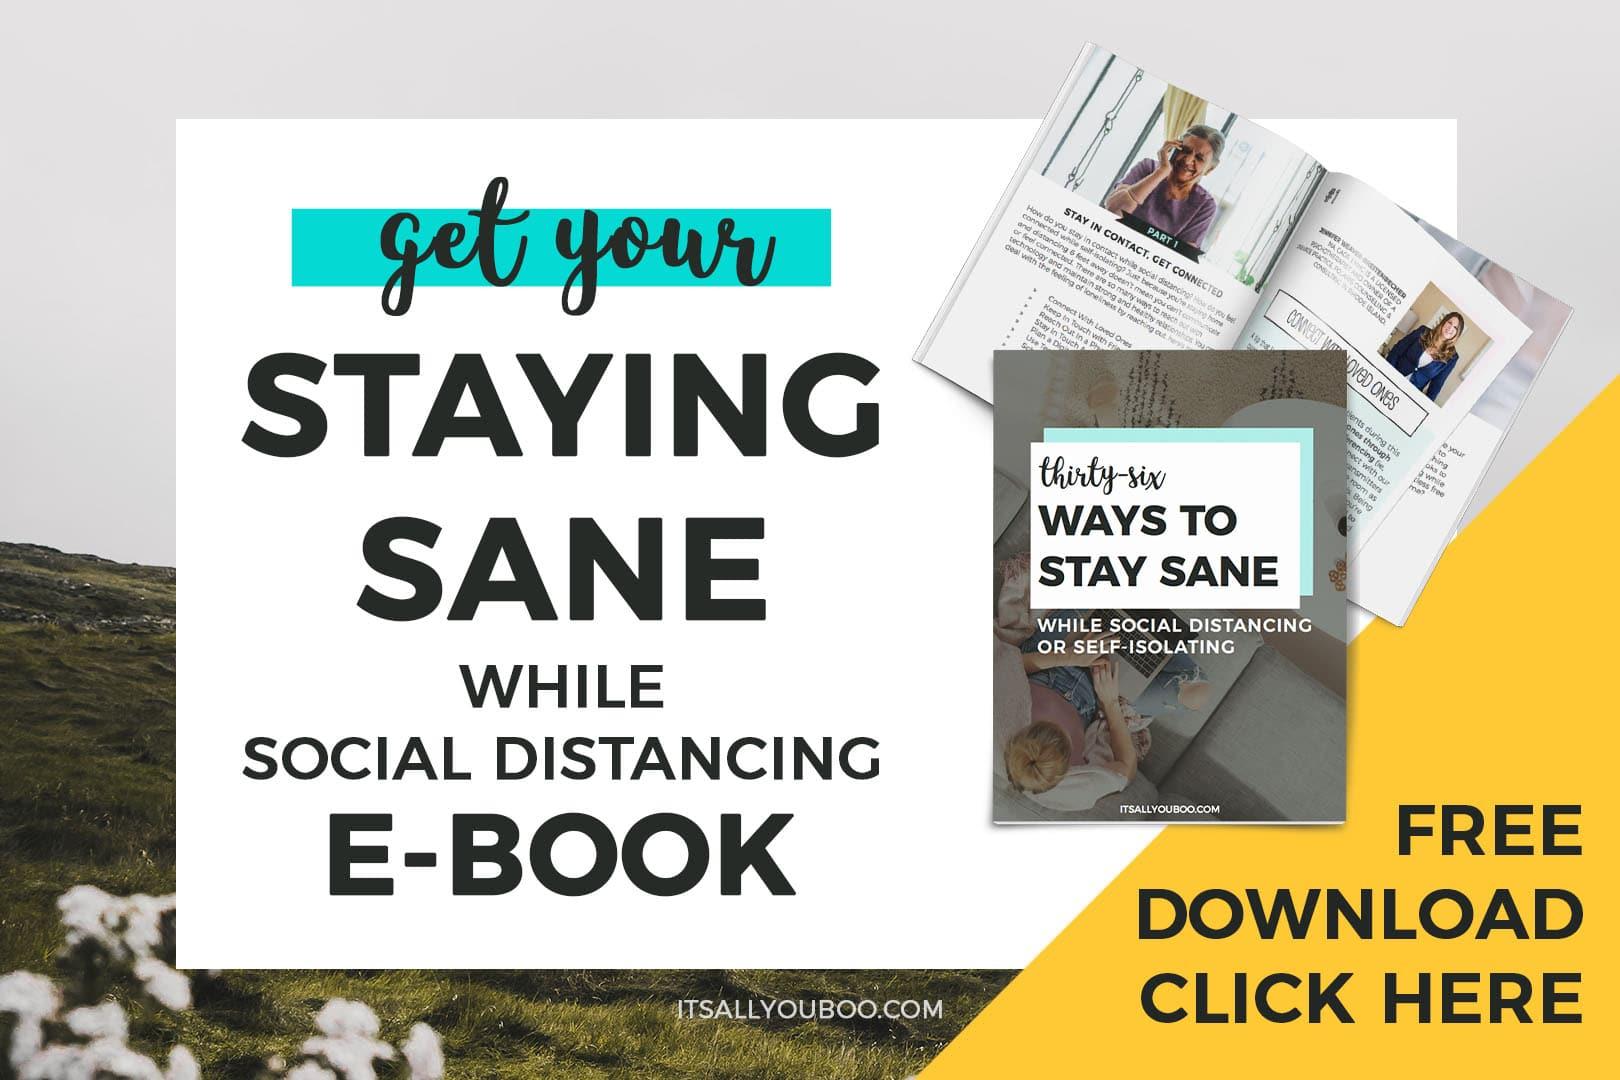 Get your Staying Sane while social distancing ebook